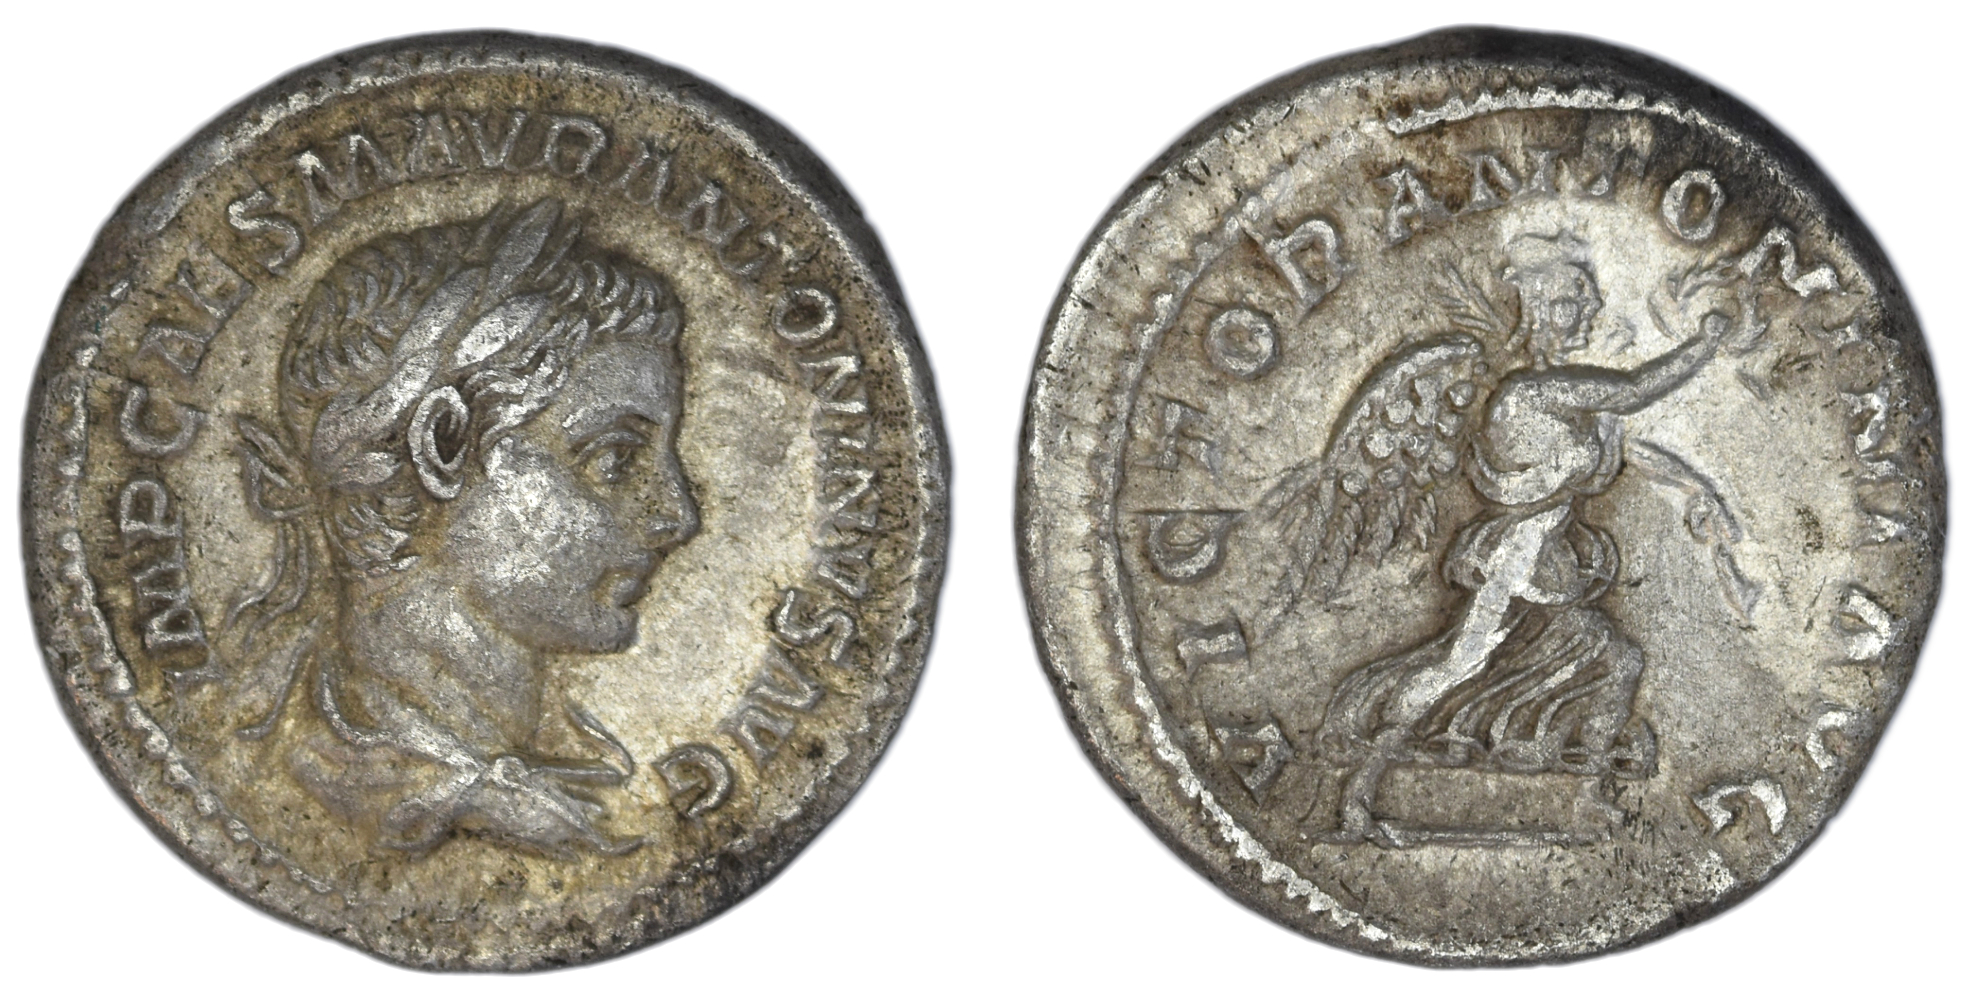 /Files/Images/Coinsite/CoinDB/Elegabalus(1).jpg